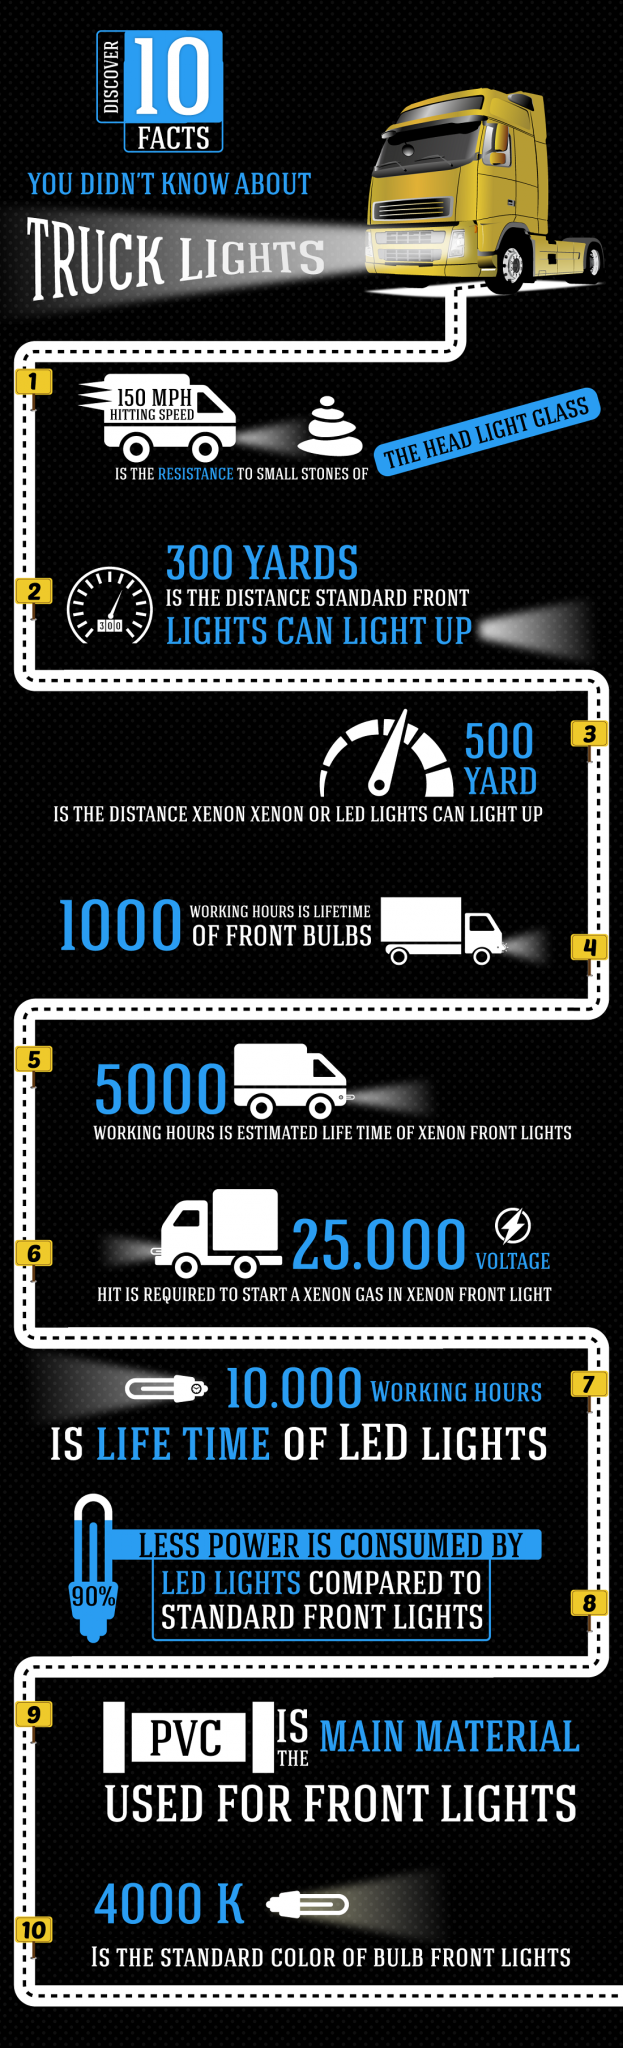 IG Learn 10 Interesting Facts About Truck Lights